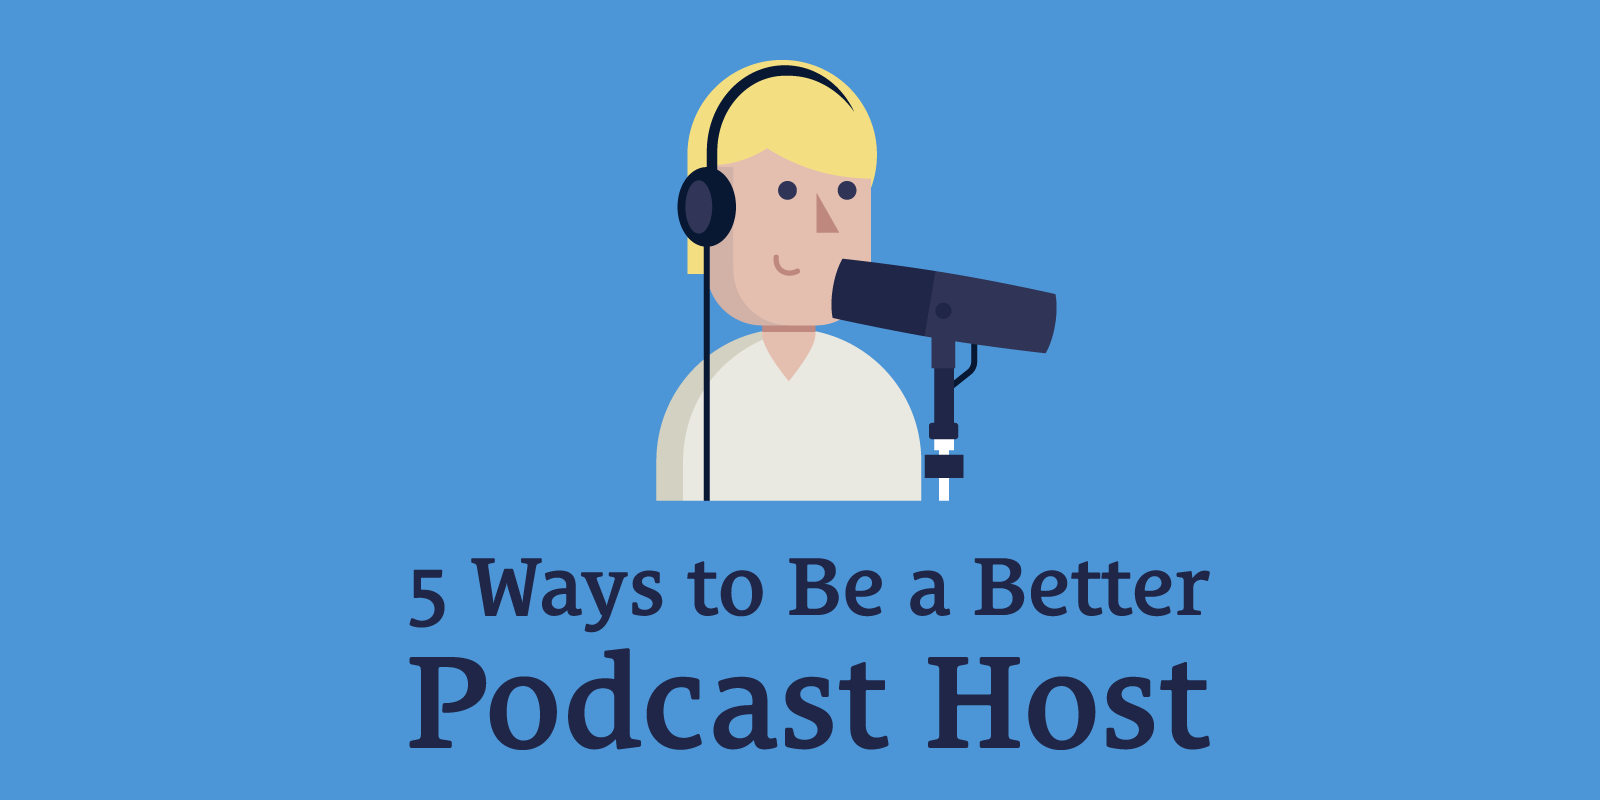 5 Ways to Be a Better Podcast Host